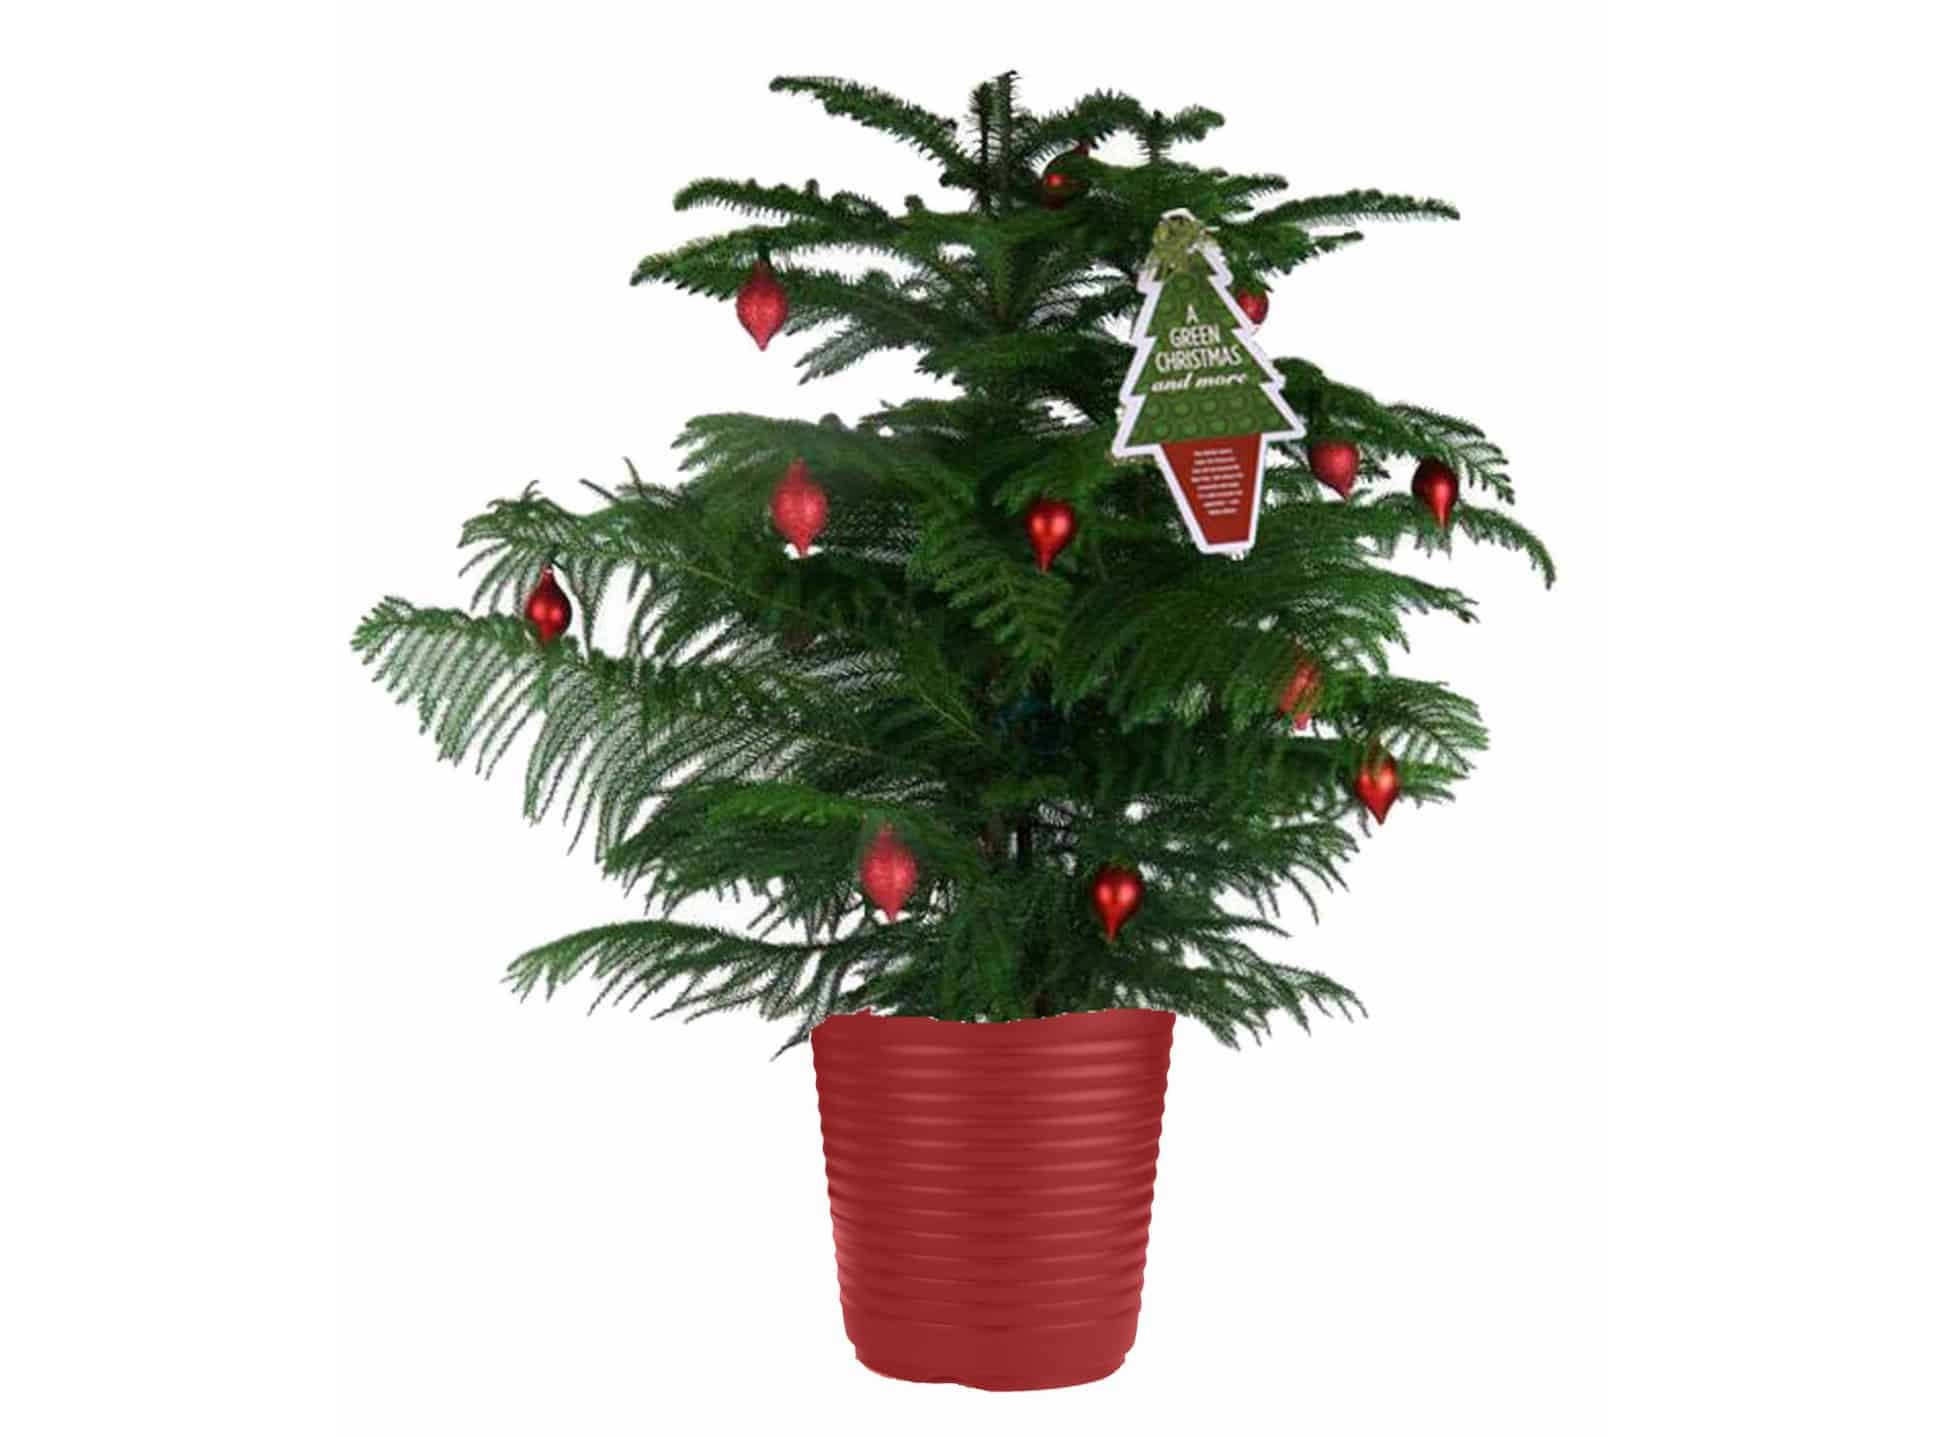 How To Care For a Potted Norfolk Pine ⋆ Big Blog Of Gardening